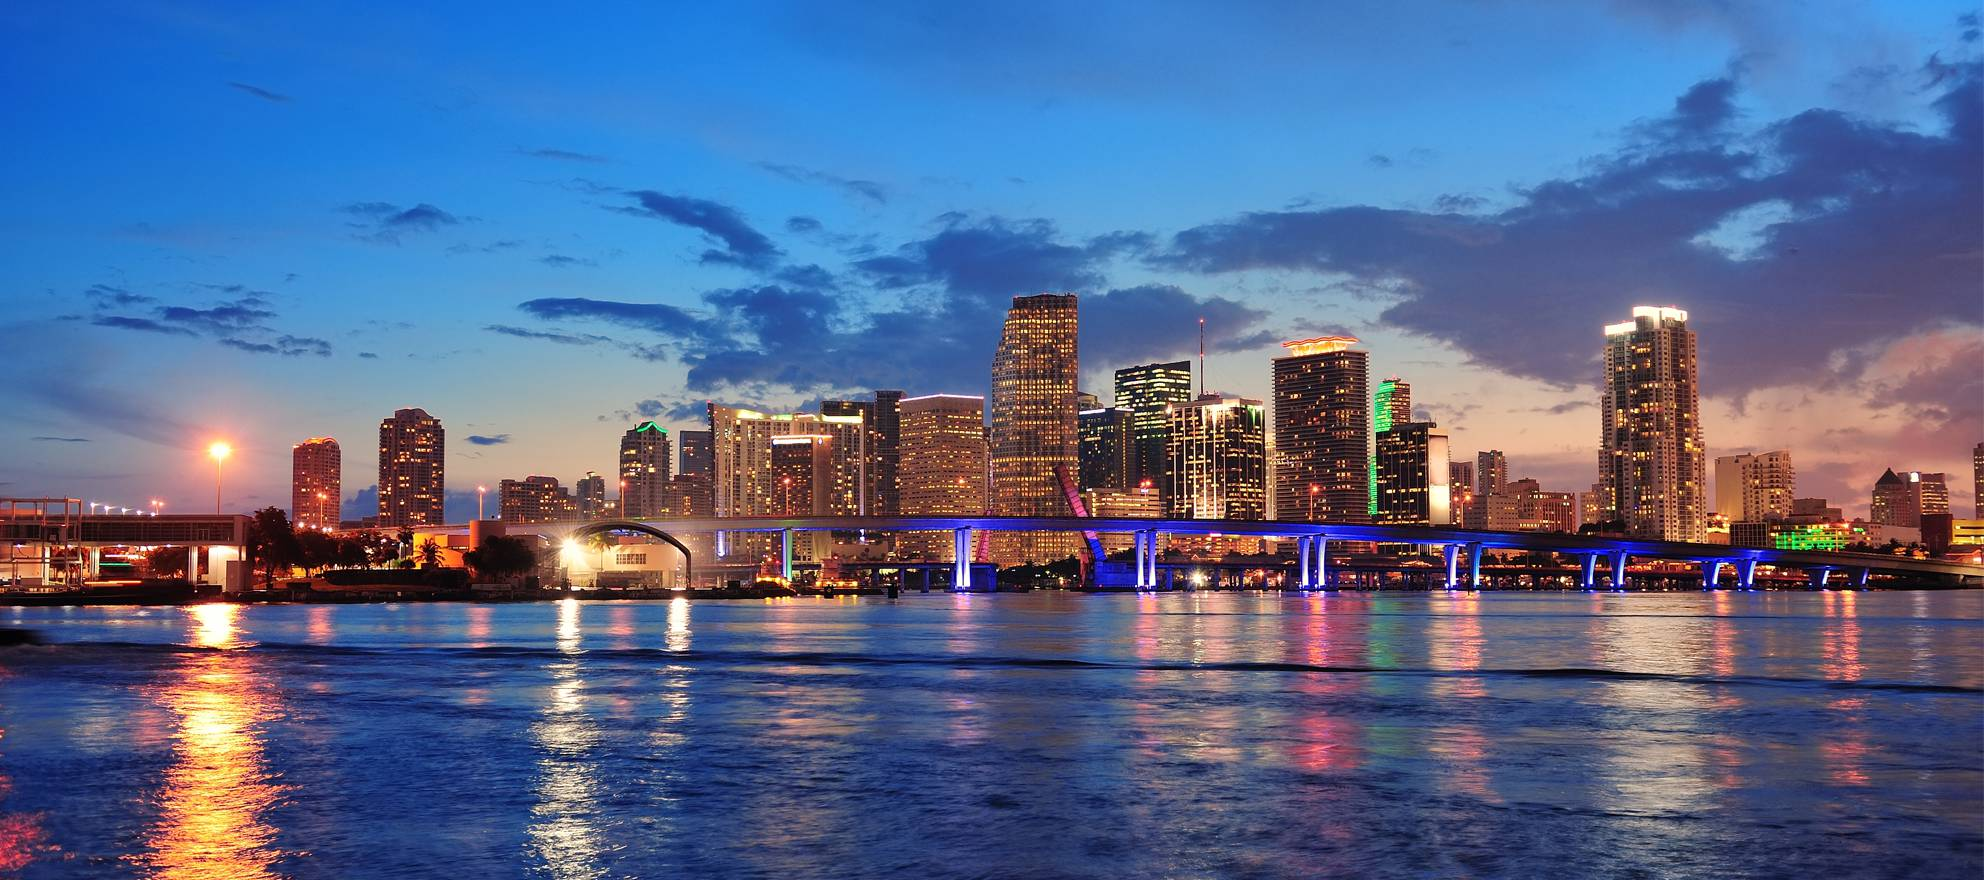 October 2015: South Florida real estate industry partnerships and developments